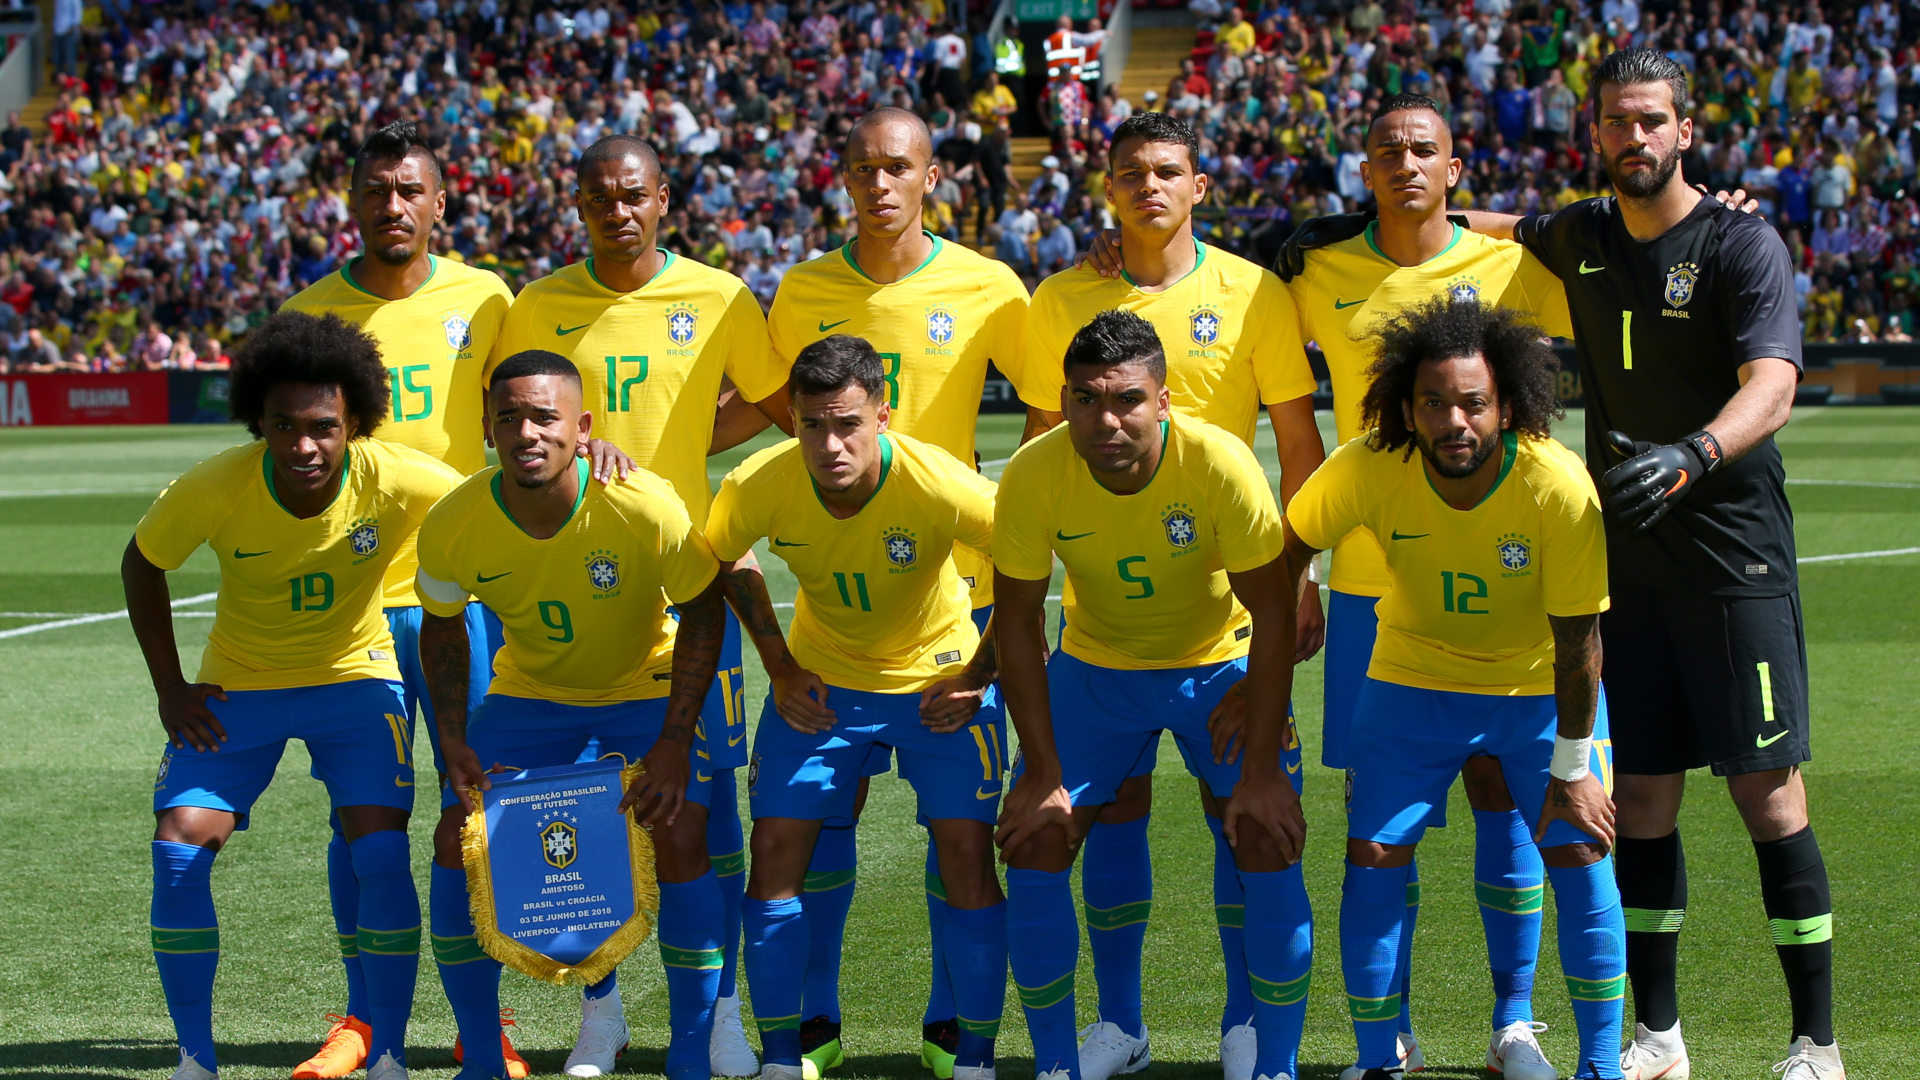 Goldman Sachs predicts Brazil will win the 2018 FIFA World Cup